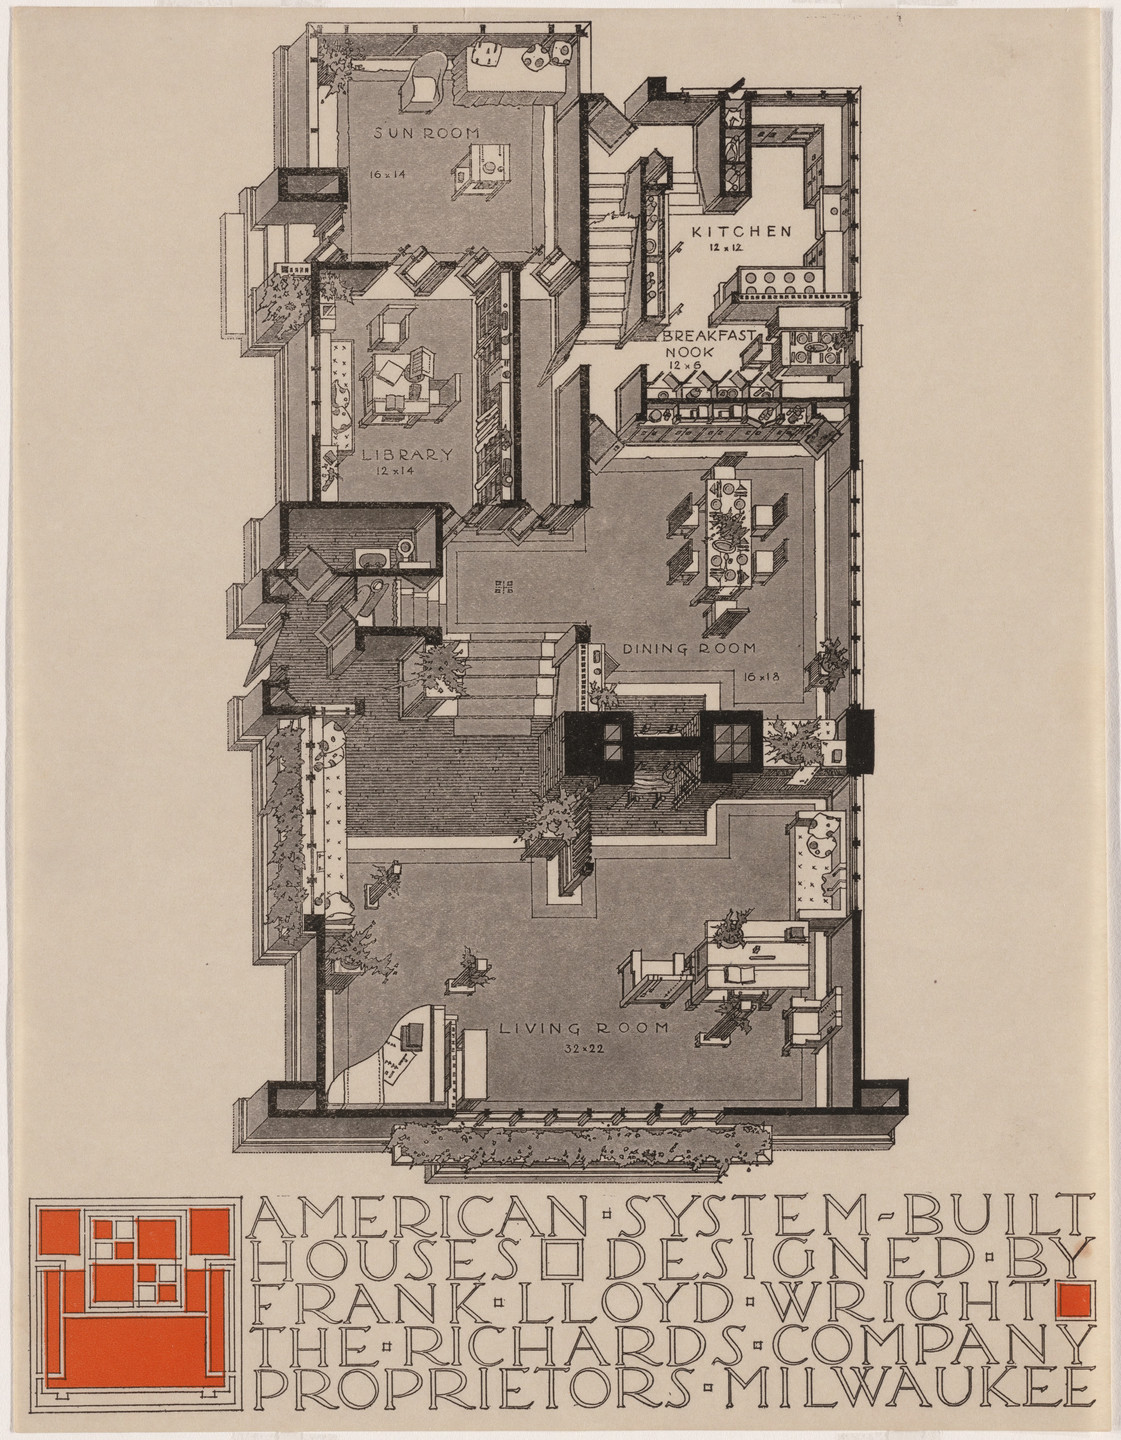 Frank Lloyd Wright. American System-Built Houses for The Richards Company project, (Plan oblique of unspecified model). 1915–1917